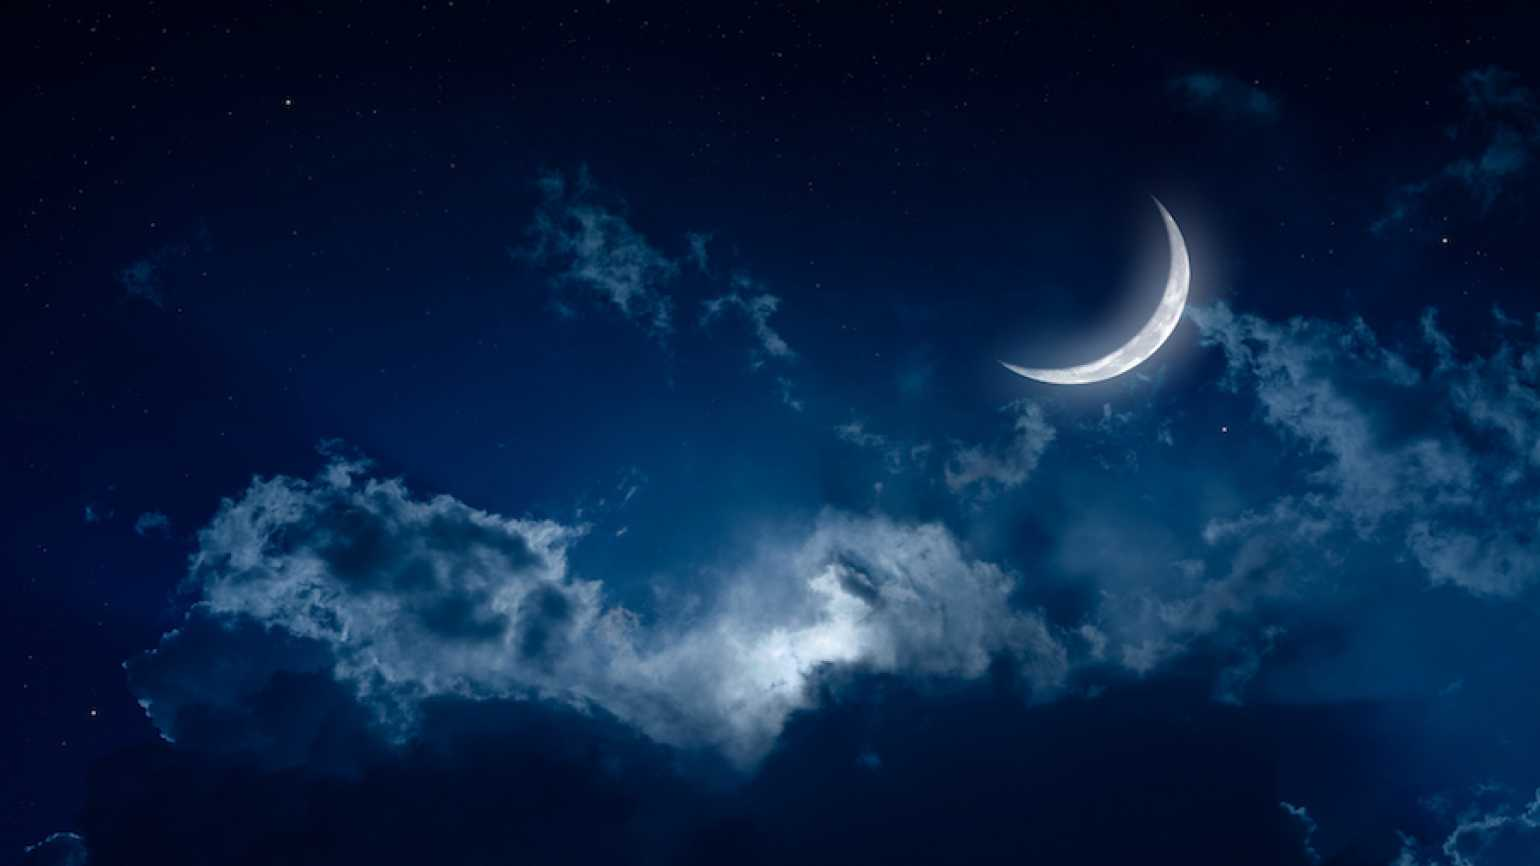 Moon at night. Photo: Thinkstock.